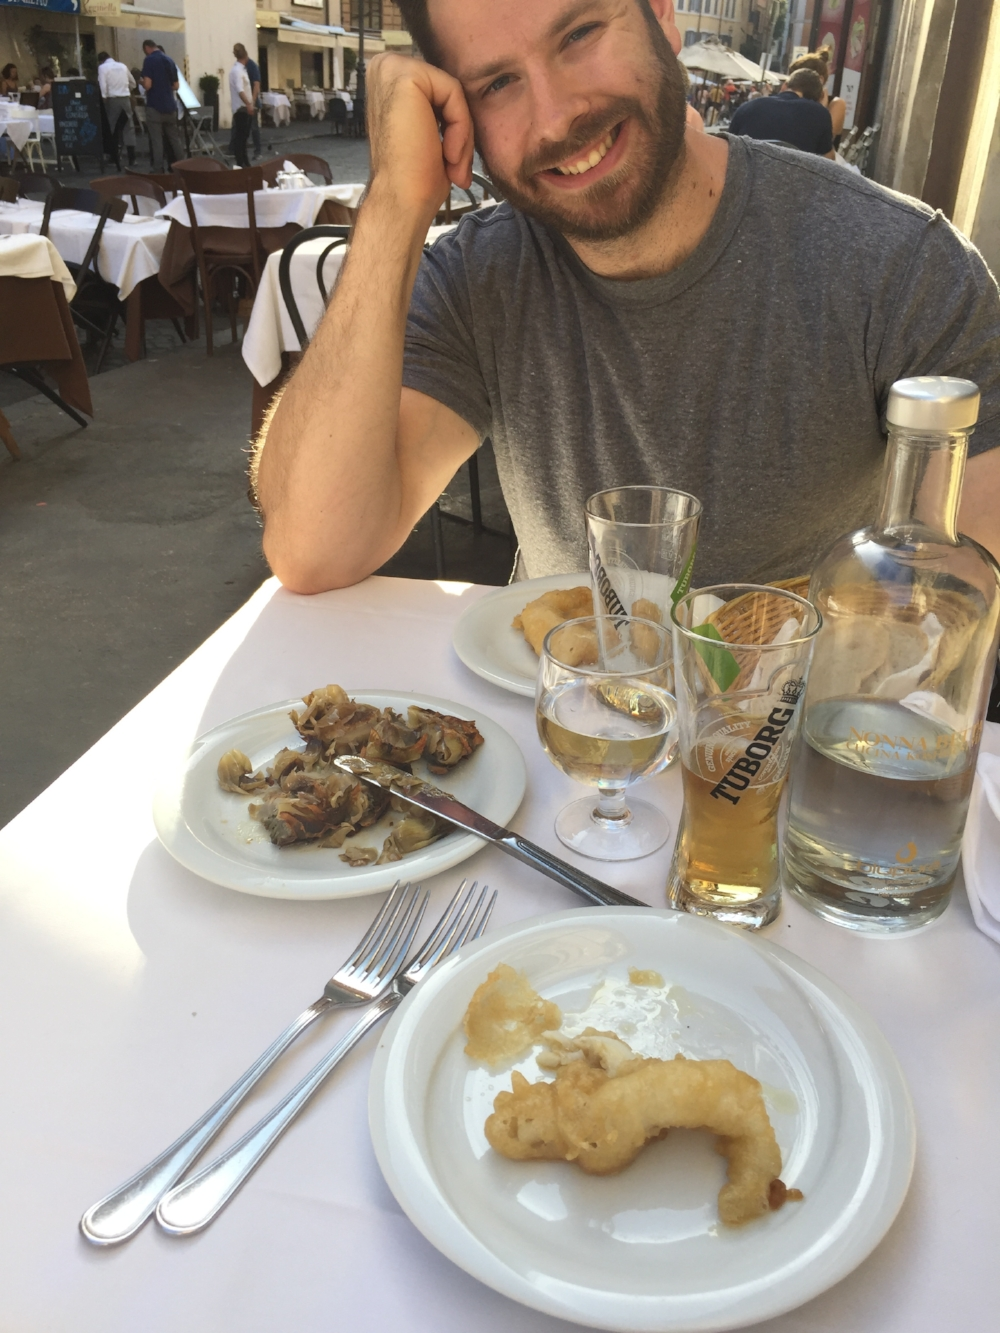 Fried fishies and artichokes in the Jewish district of Rome...and beer